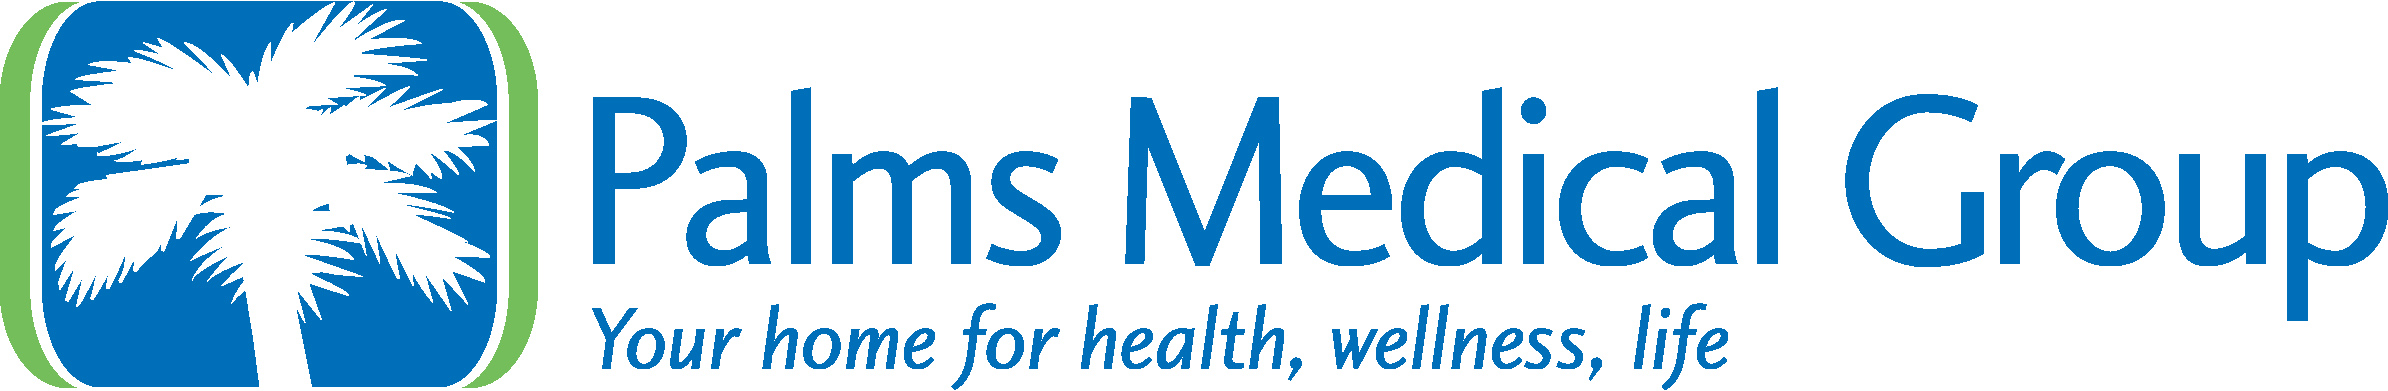 Palms Medical Group